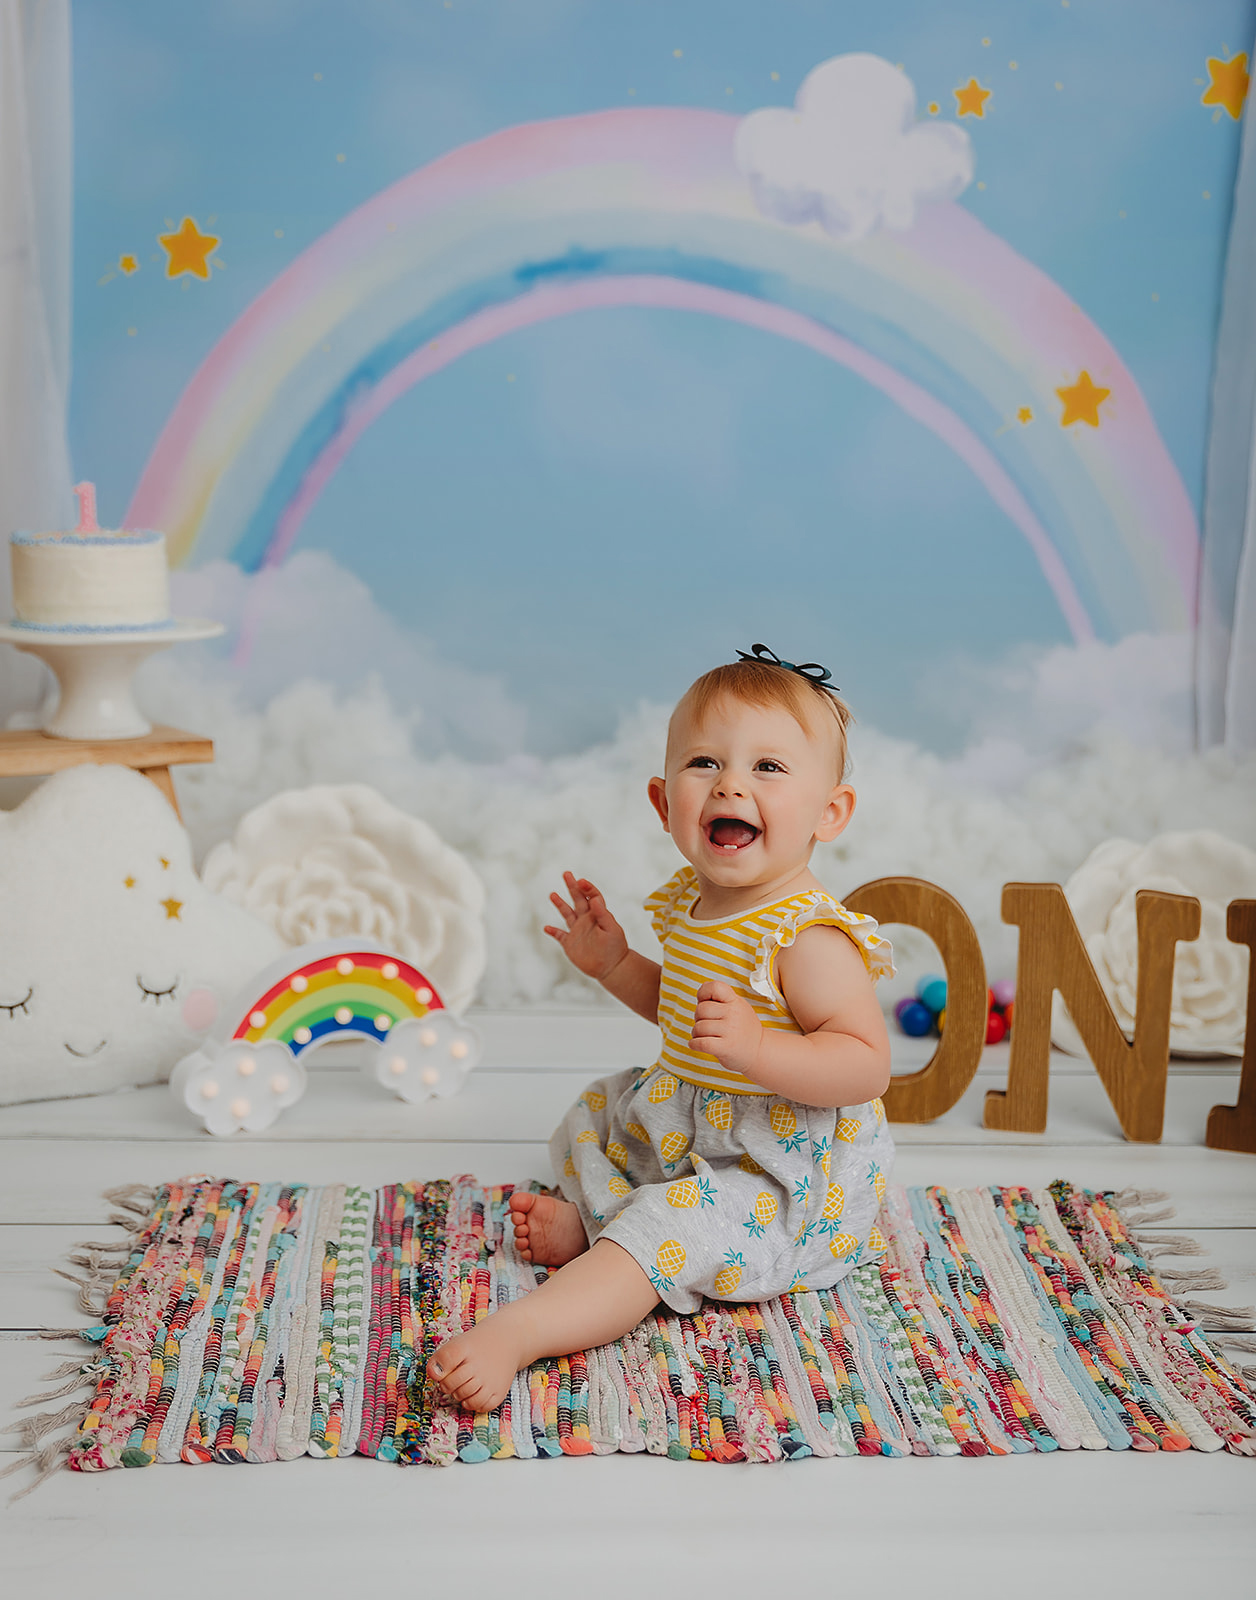 Toddler girl on rainbow photography set